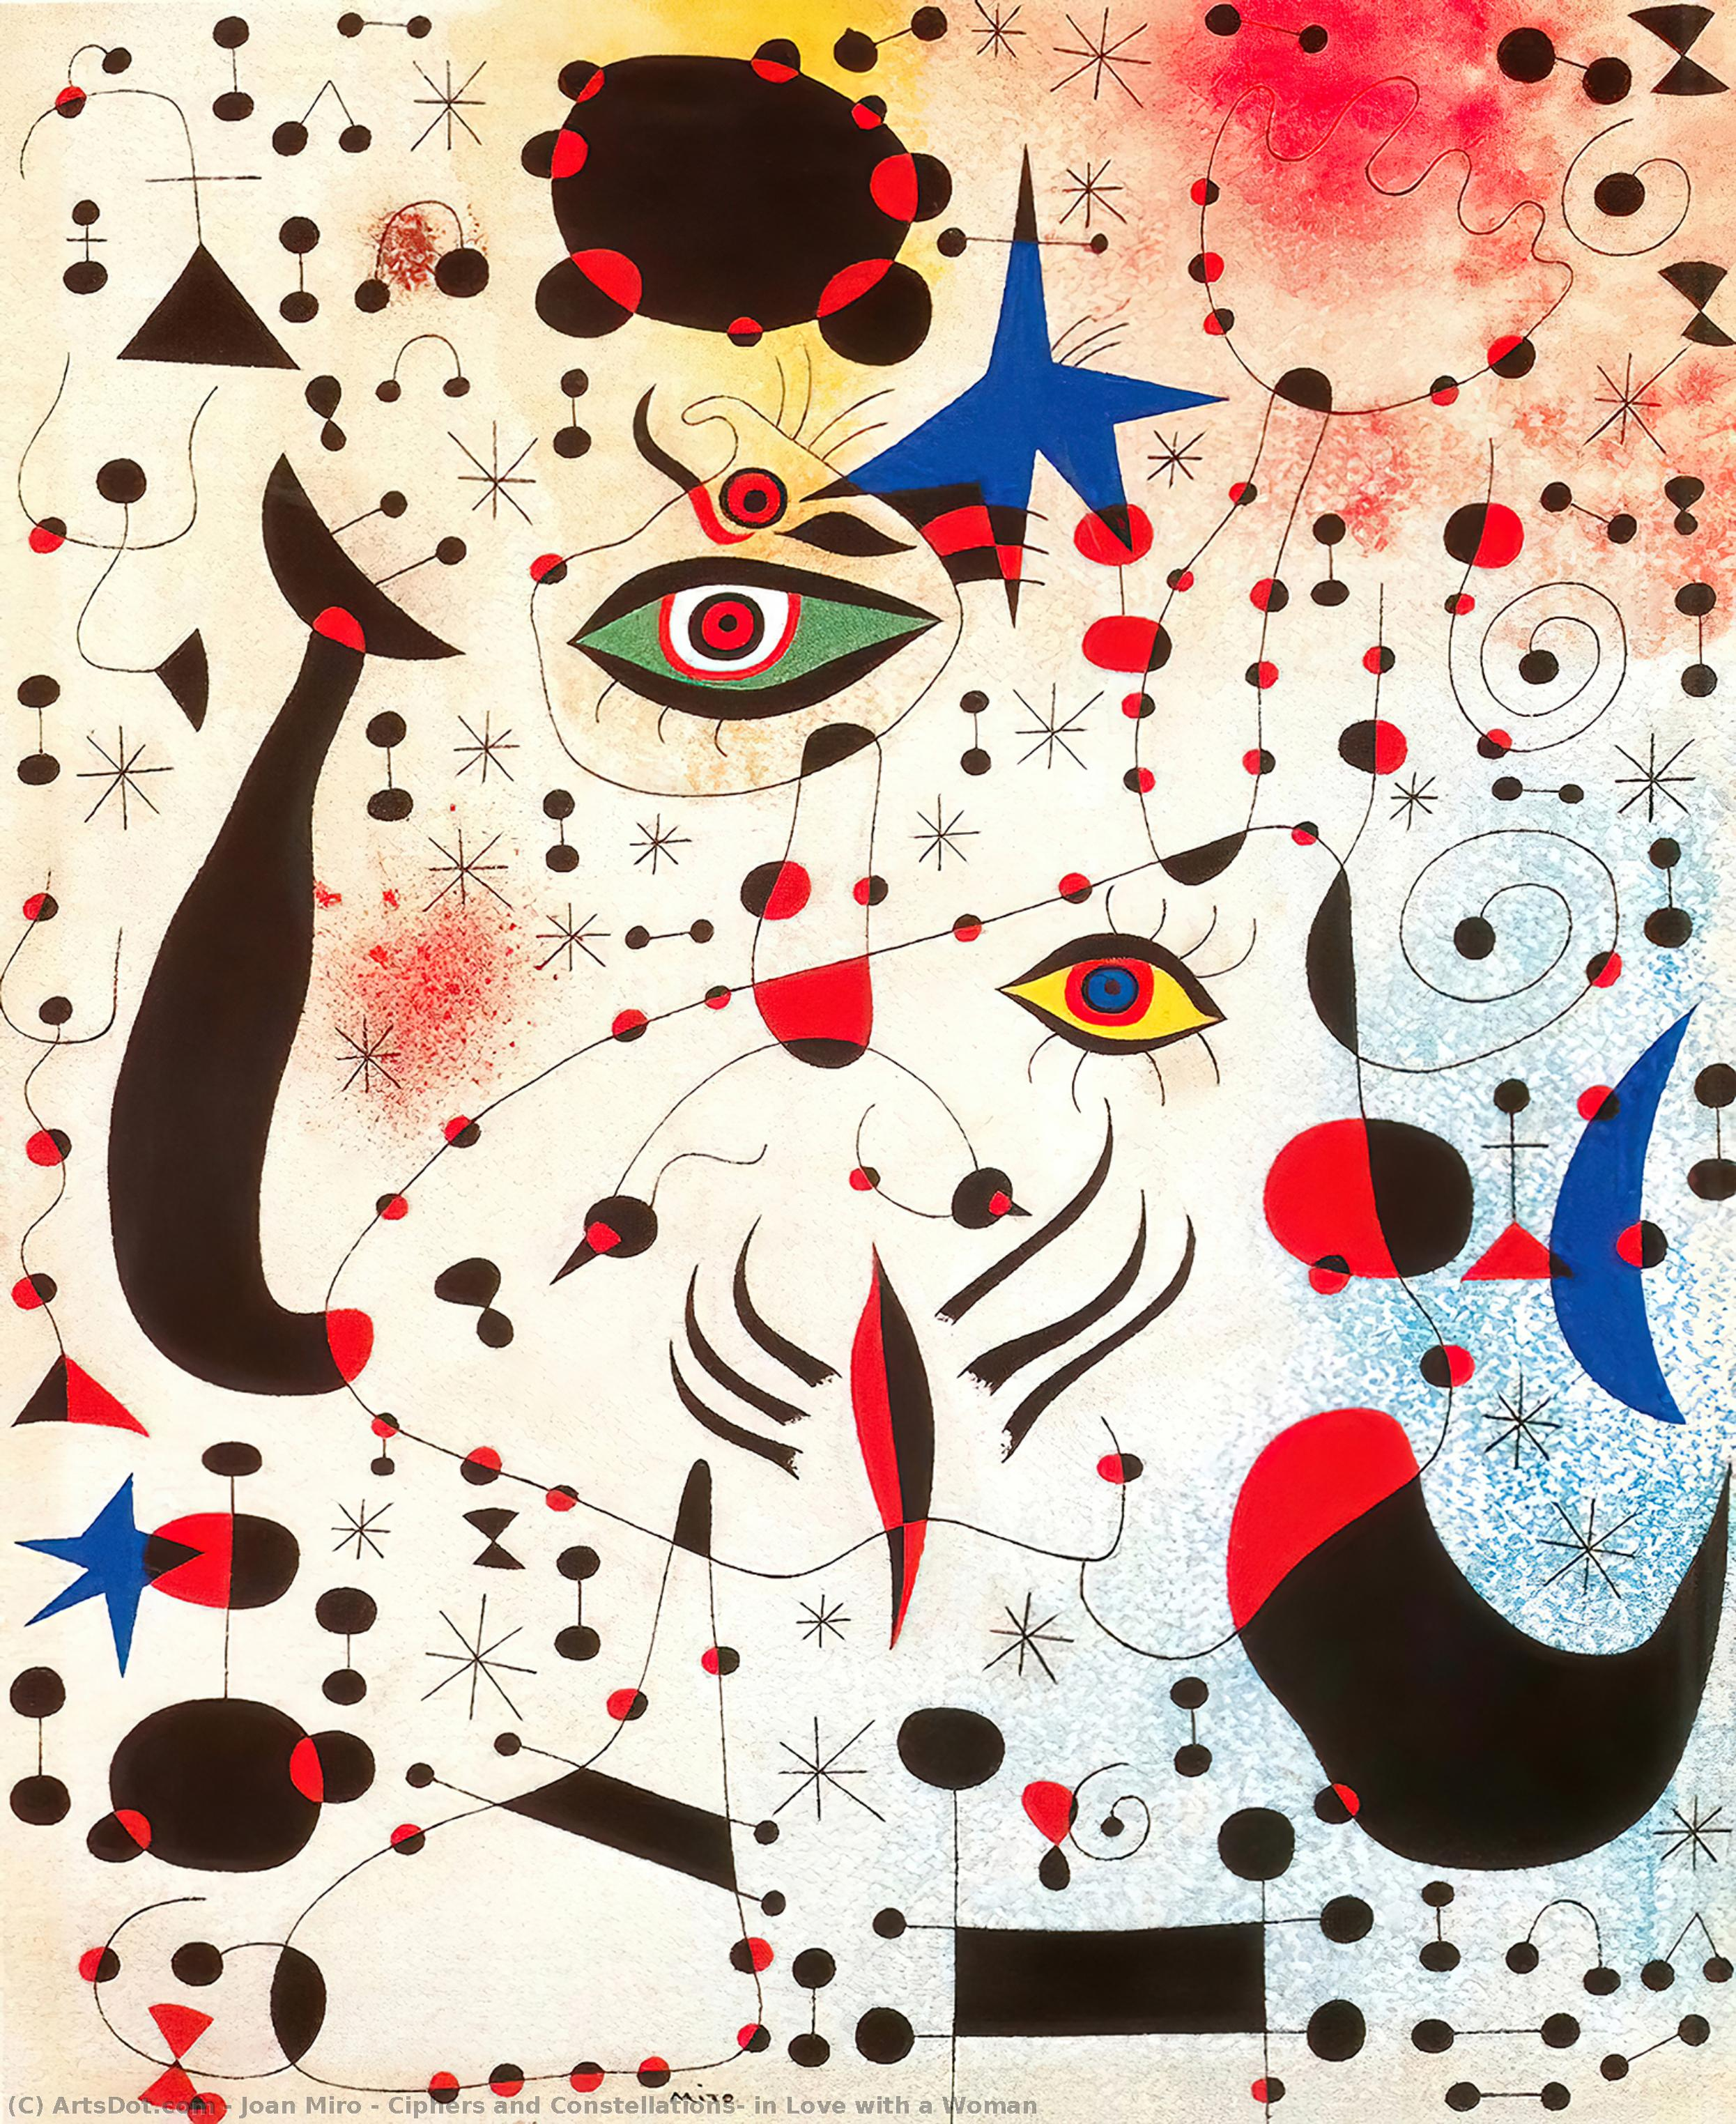 Wikioo.org - The Encyclopedia of Fine Arts - Painting, Artwork by Joan Miro - Ciphers and Constellations, in Love with a Woman